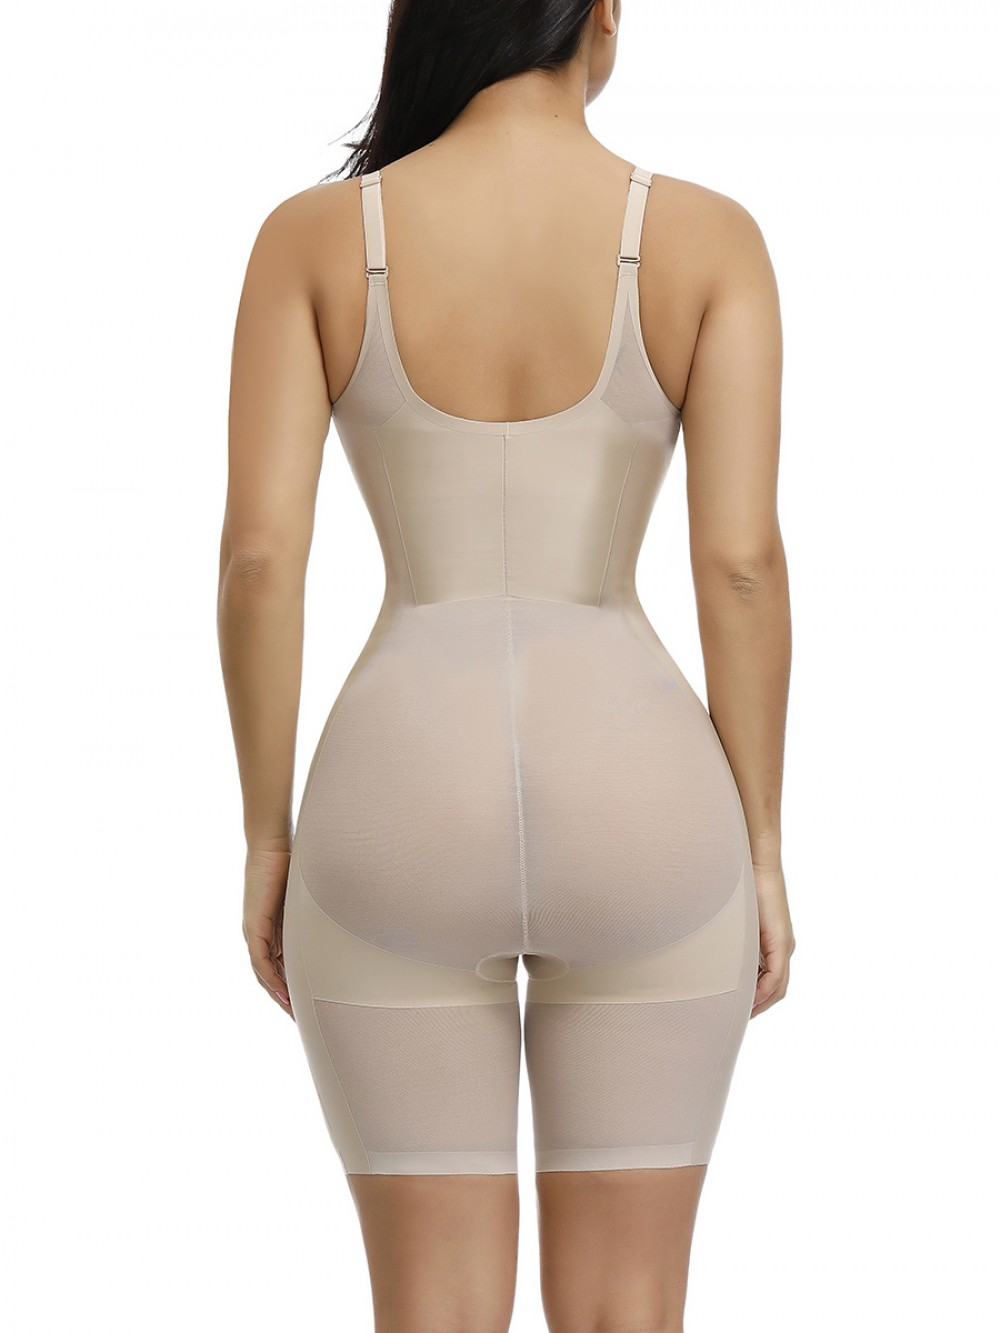 Skin Color Flat Tummy Queen Size High Waisted Body Shaper Smooth Abdomen